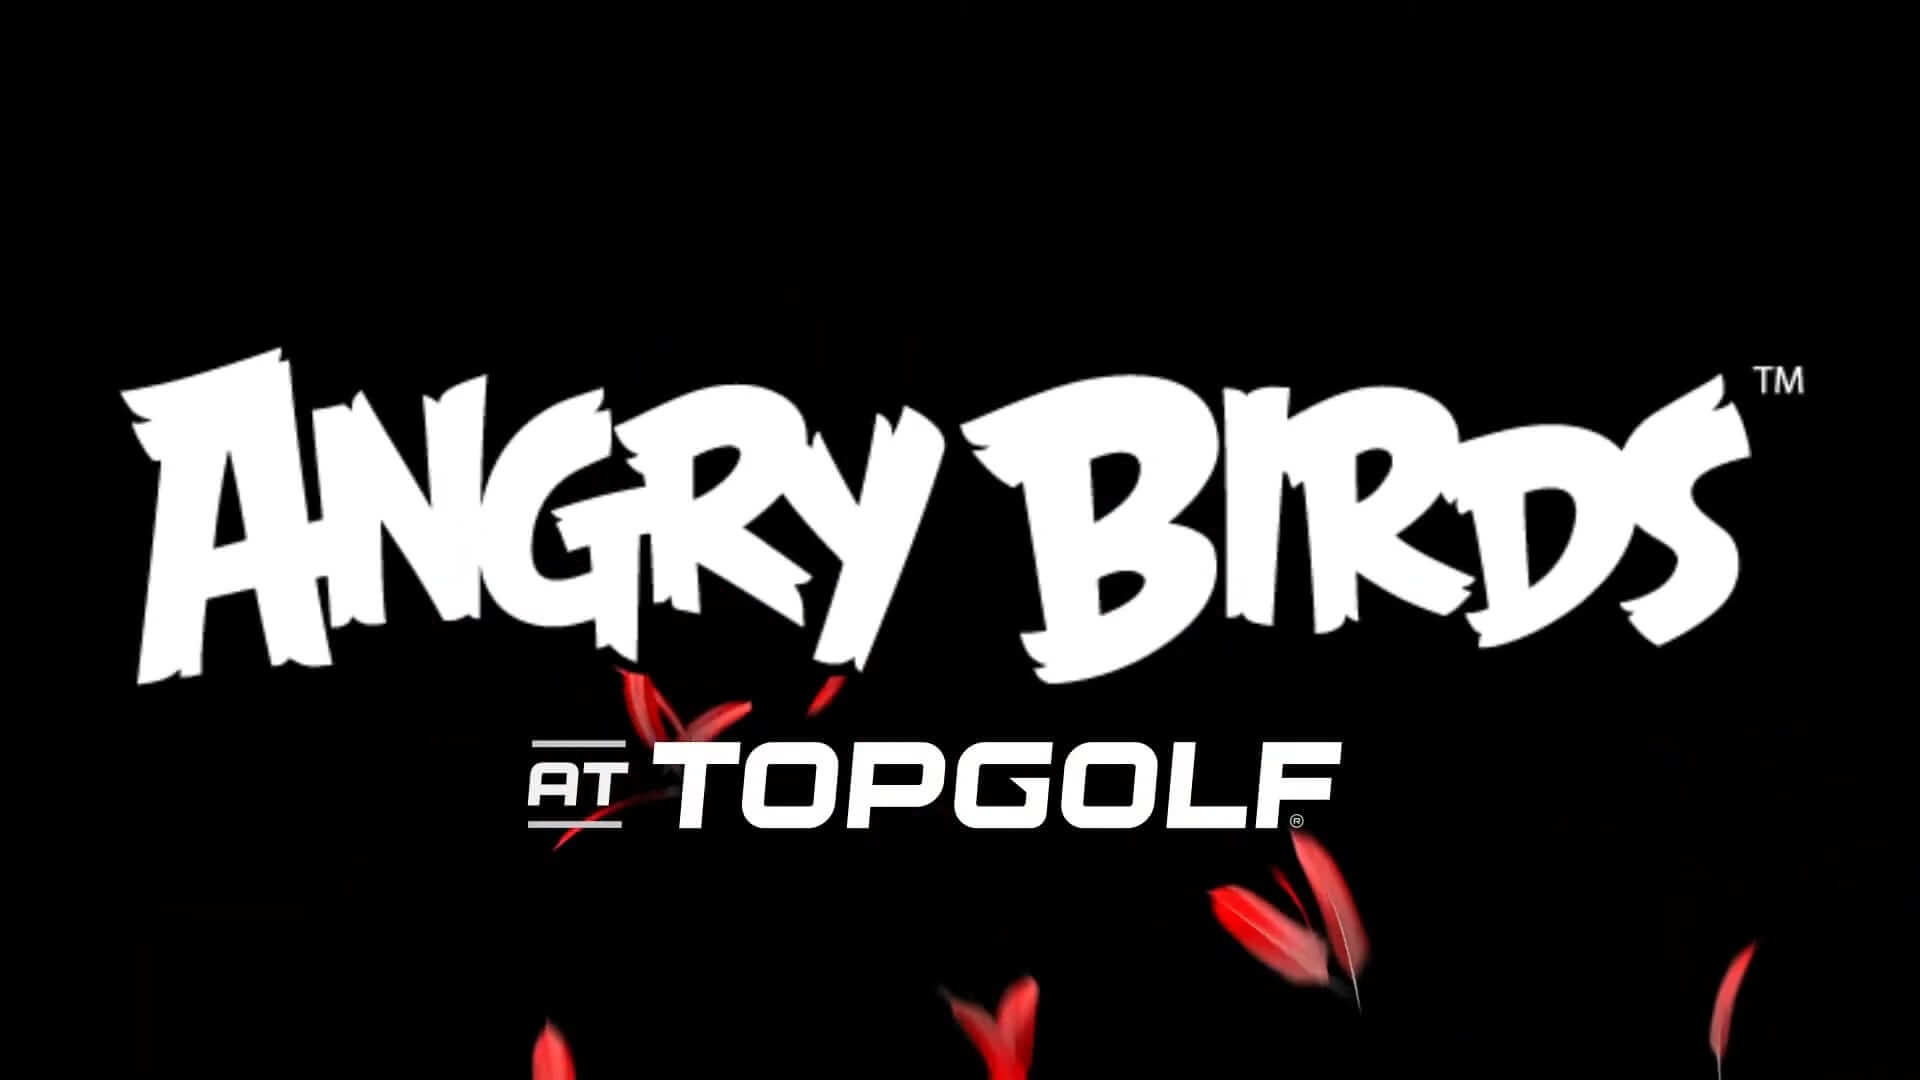 You Can Play Angry Birds At Topgolf Starting This Fall